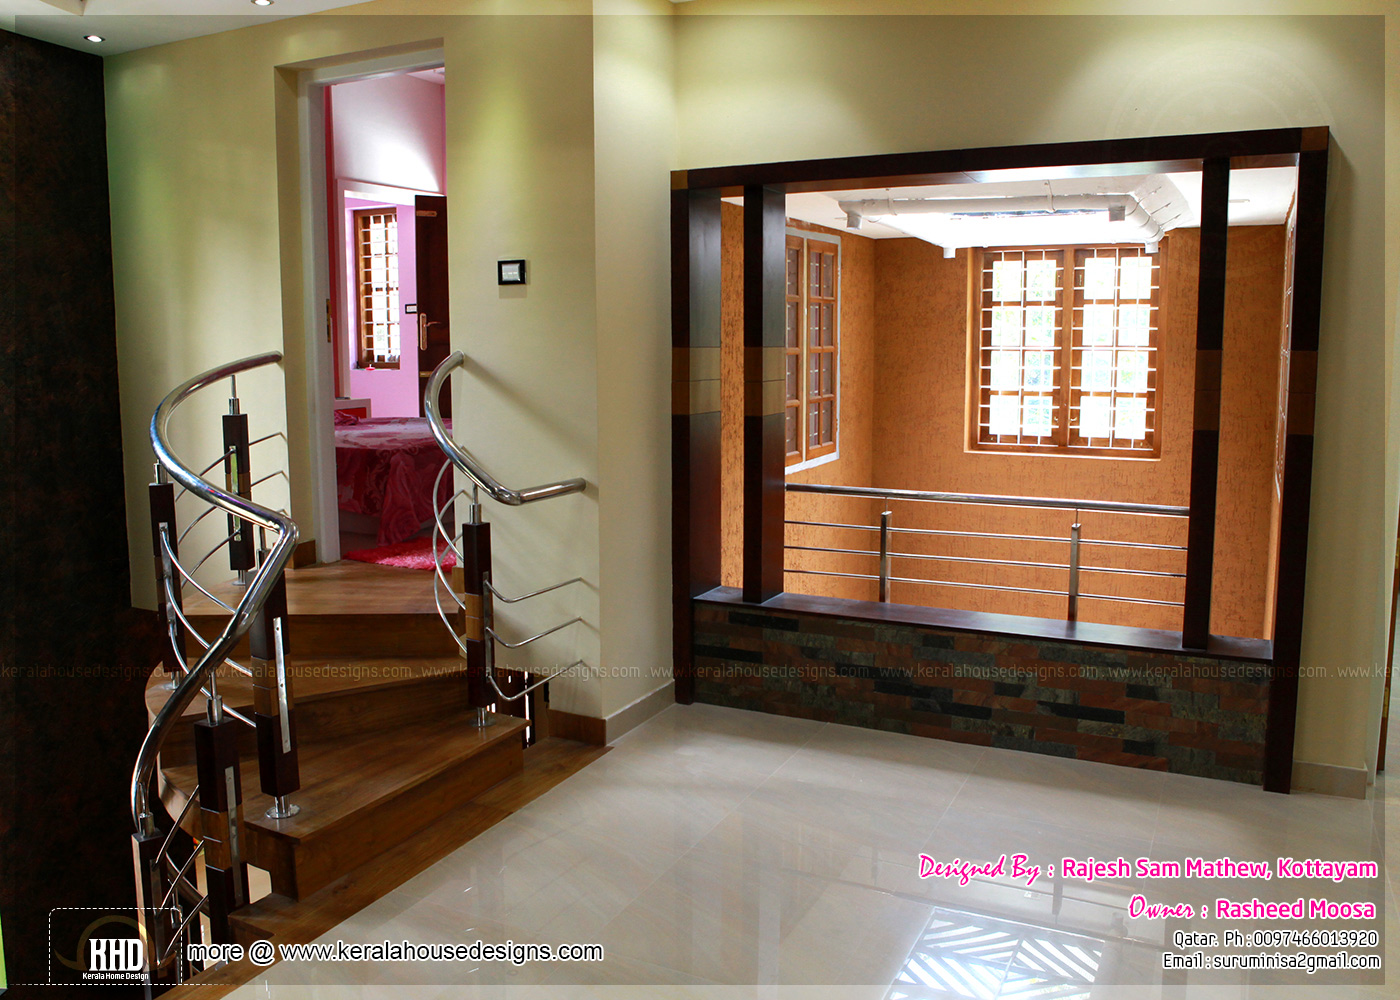 Kerala interior design with photos kerala home design for Interior decoration of house photos